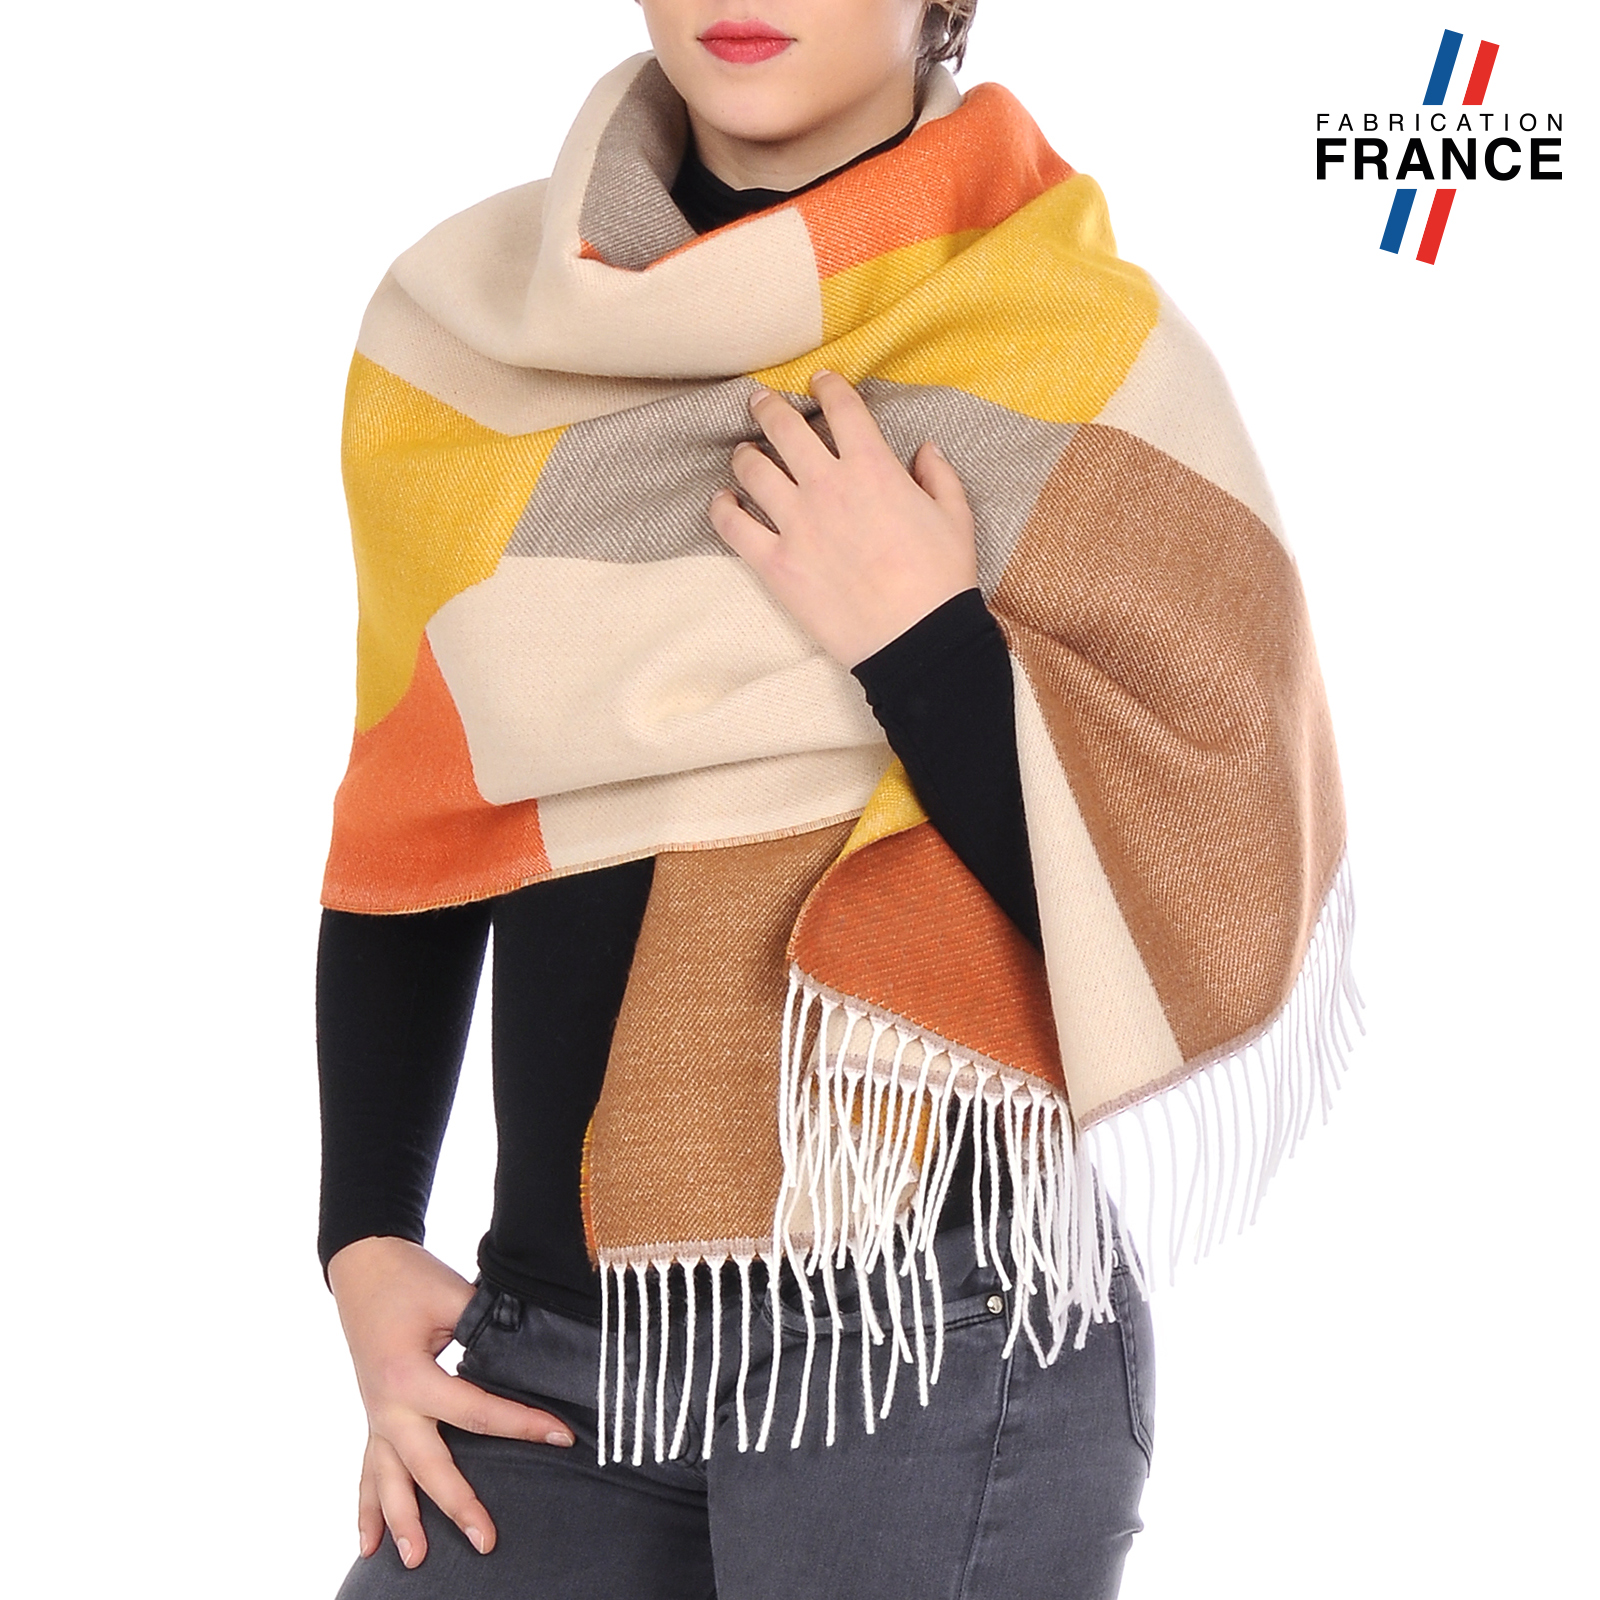 AT-03449-V16-chale-femme-patchwork-beige-orange